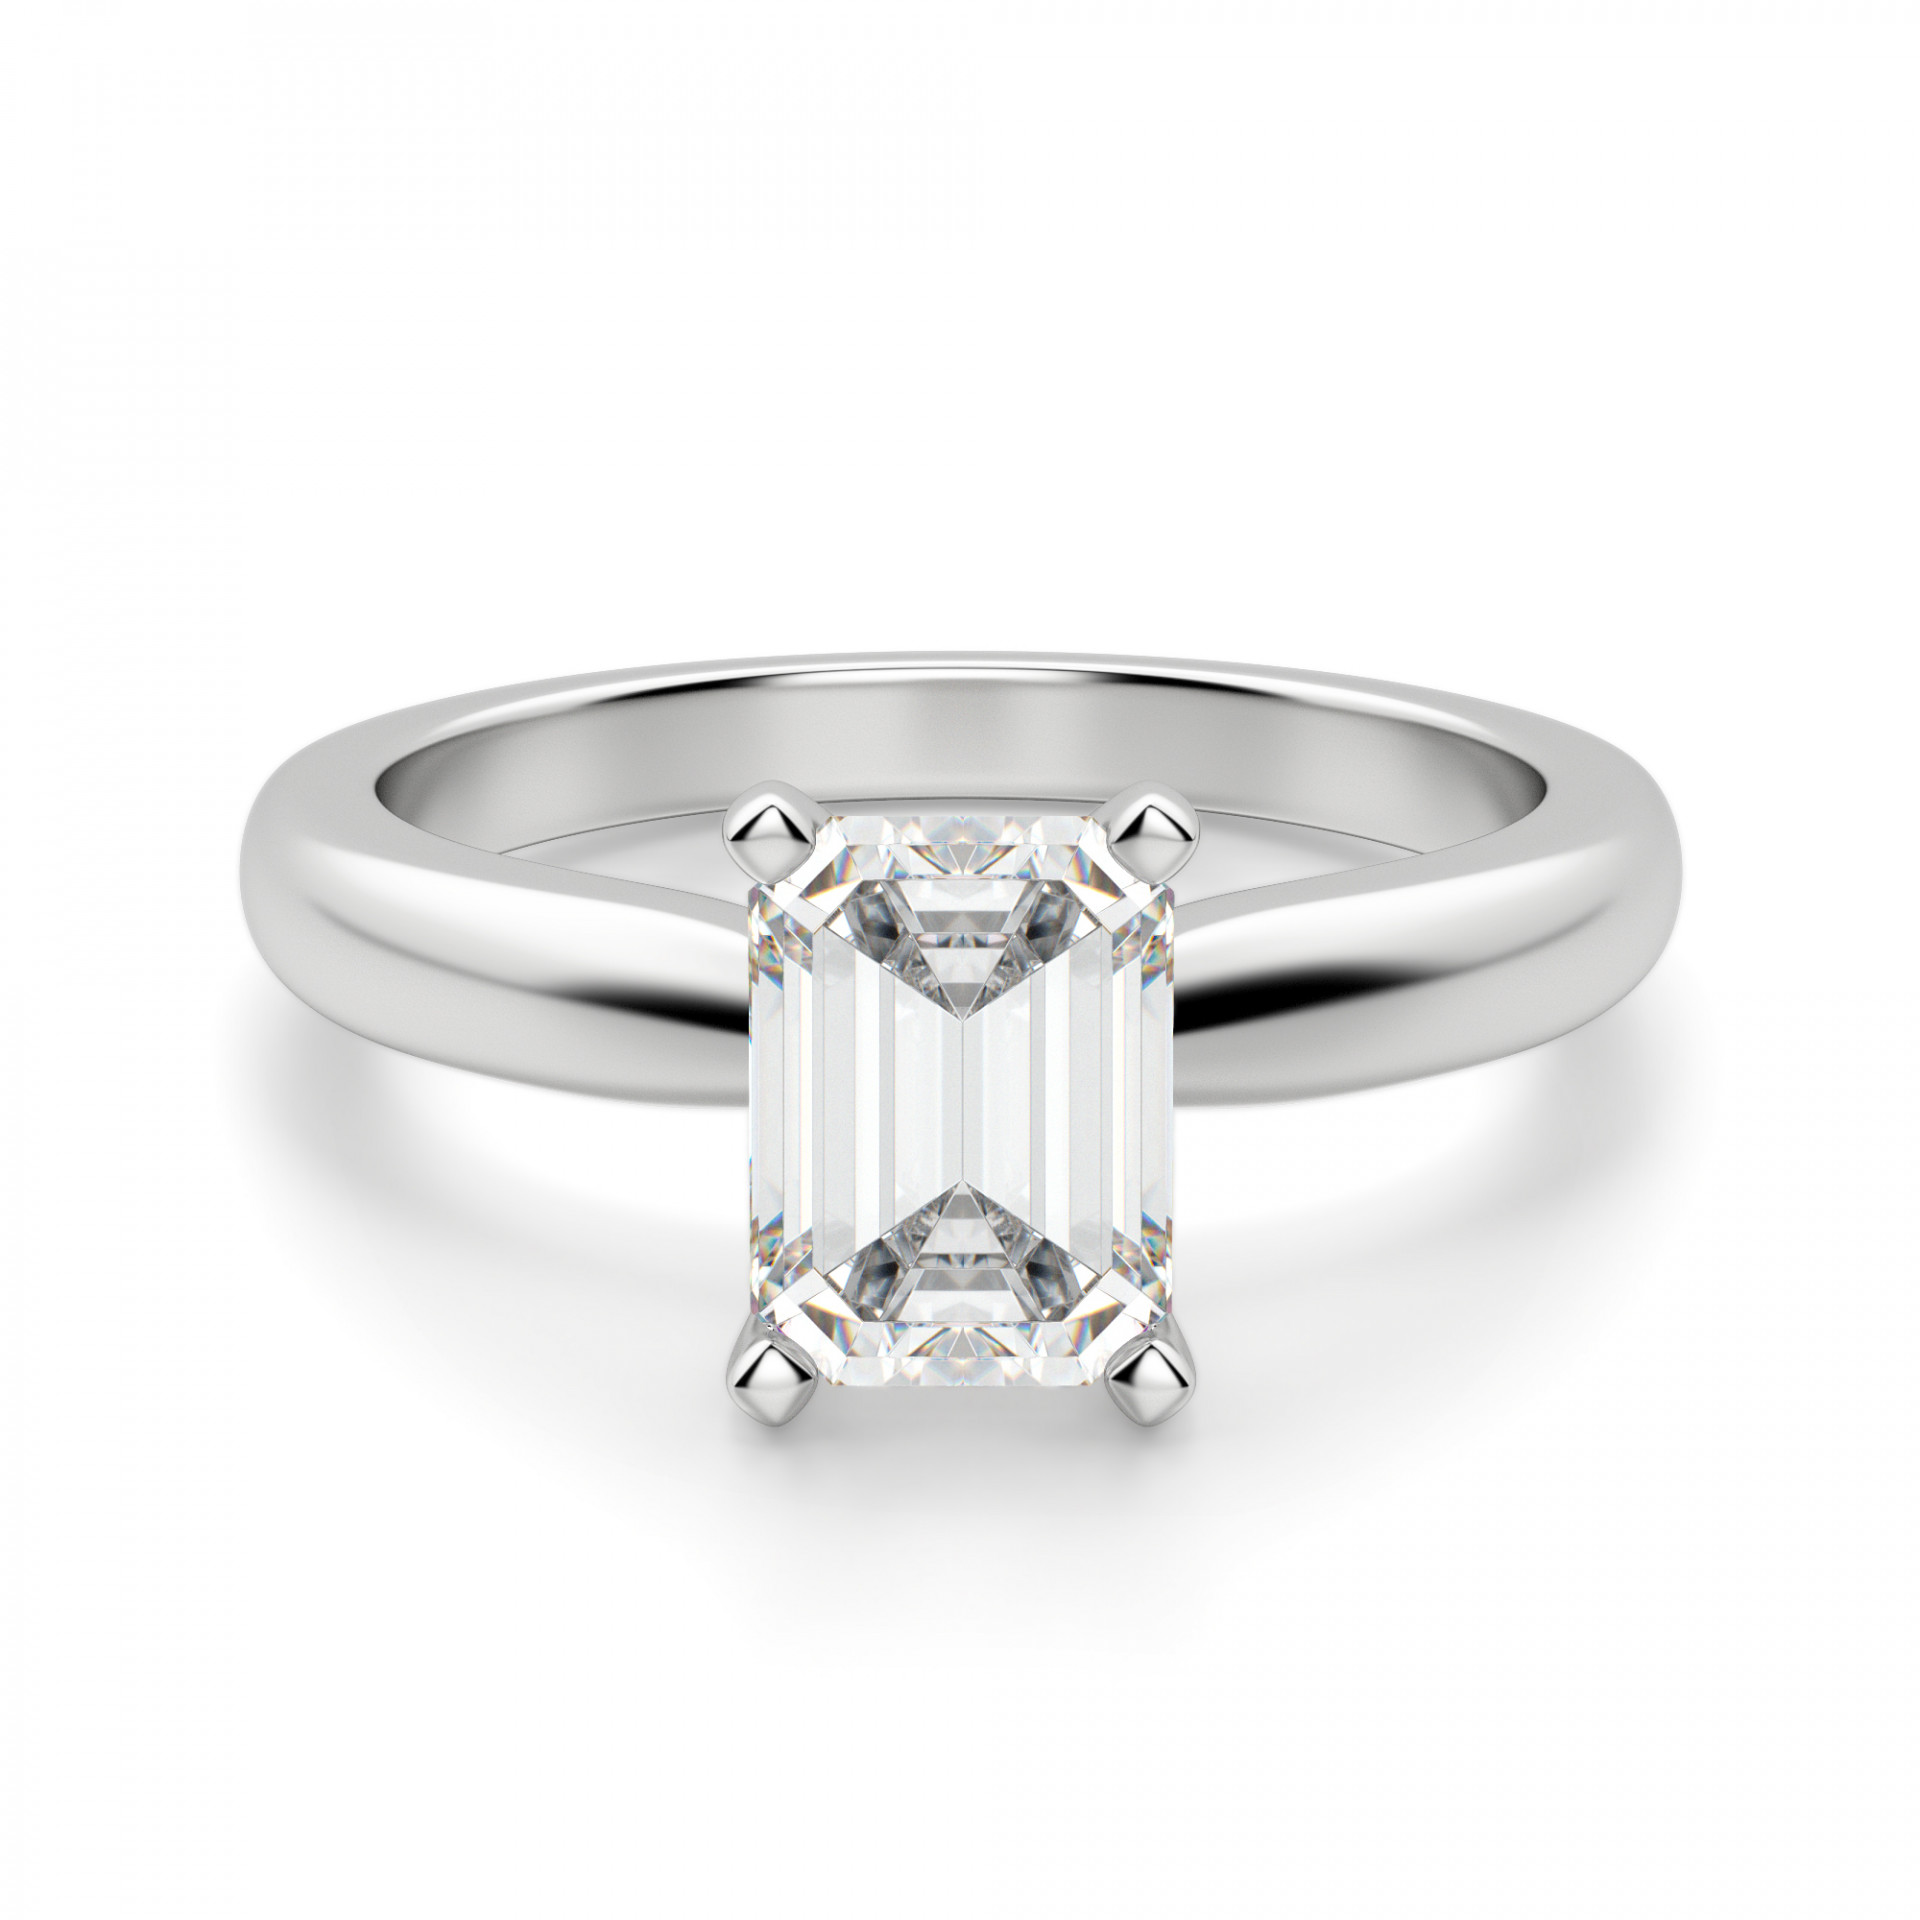 bec4c490ceb20 Tiffany-Style Solitaire Emerald Cut Engagement Ring